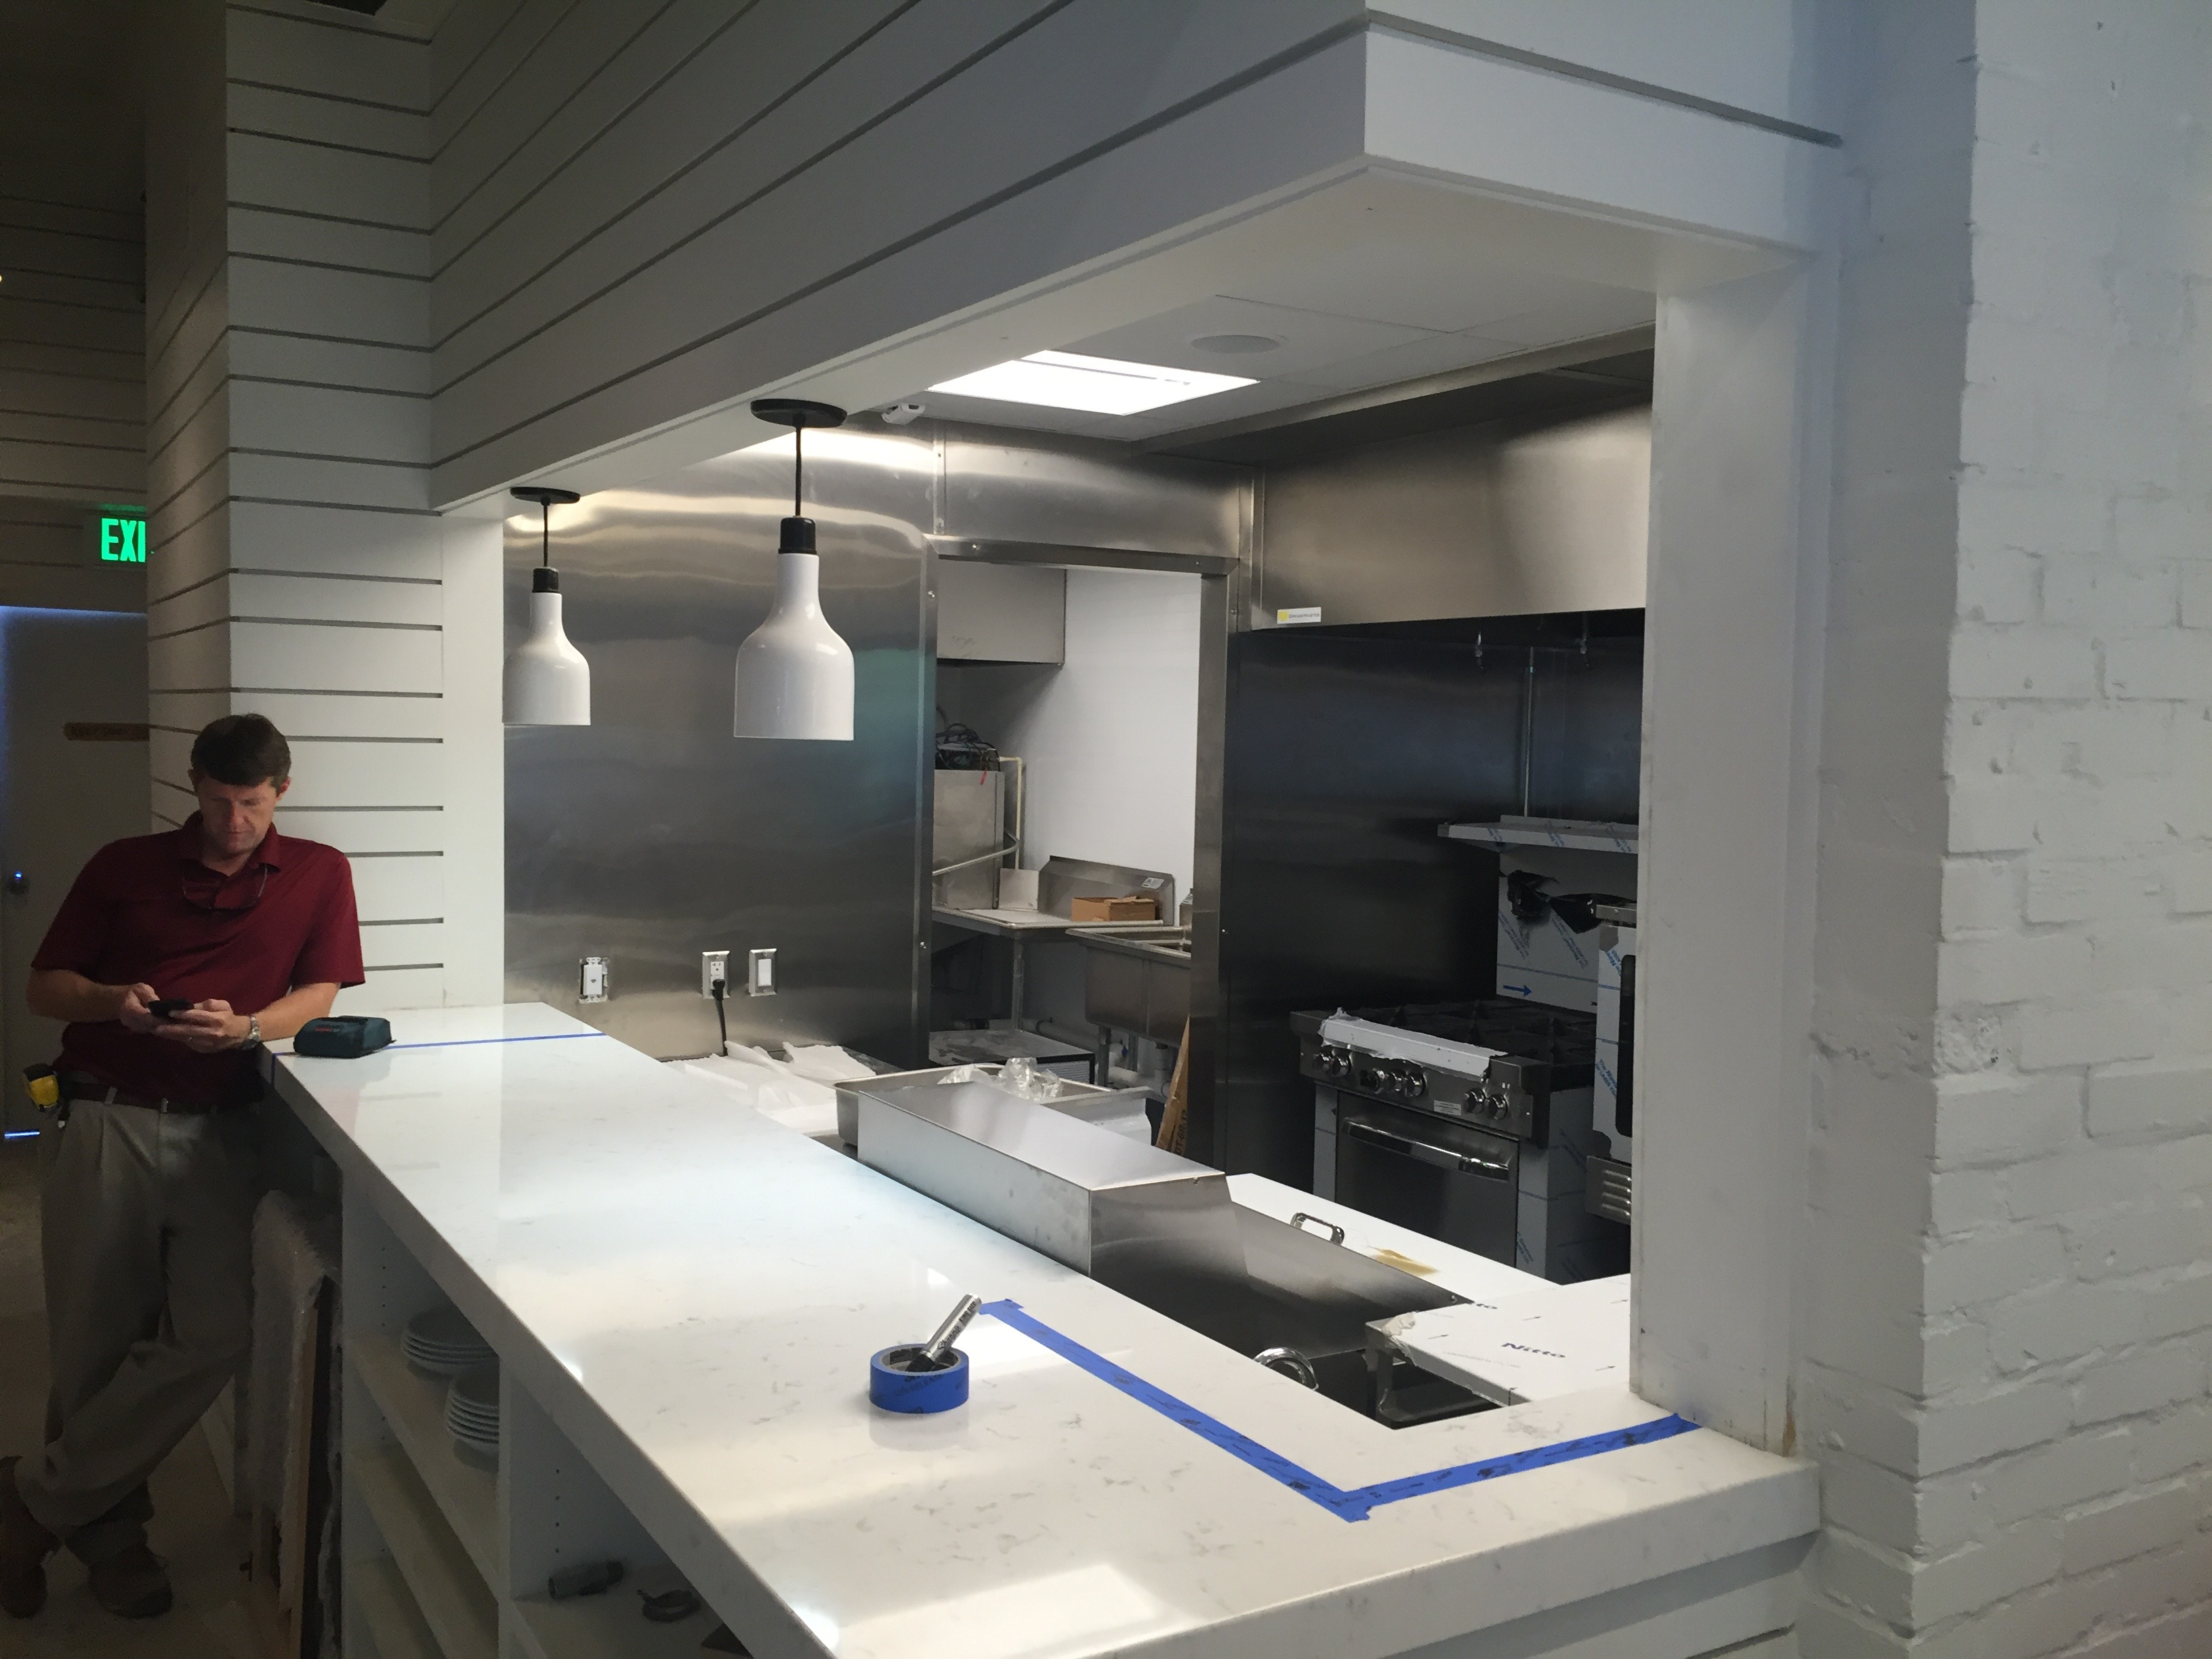 Atlantic's kitchen will be open air and easily visible to anyone